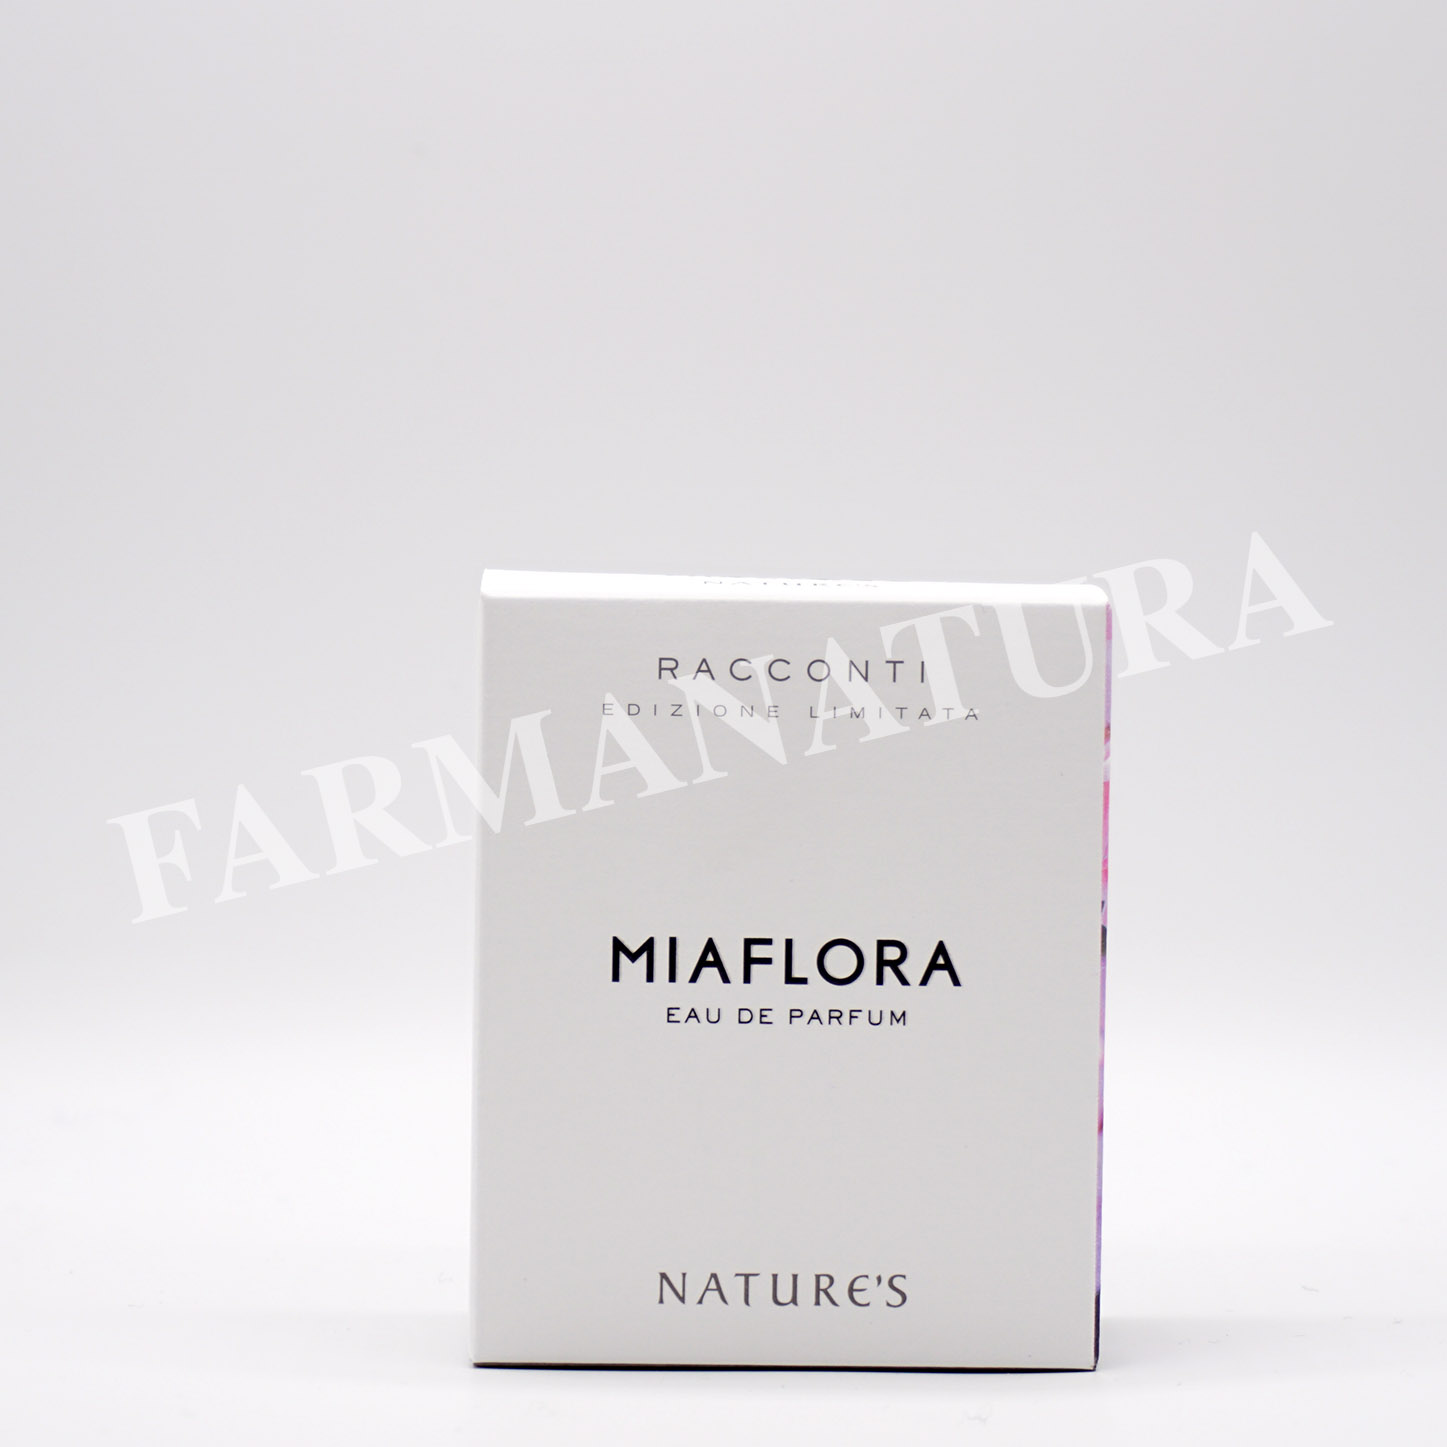 Racconti Miaflora Edp 30Ml Nature'S